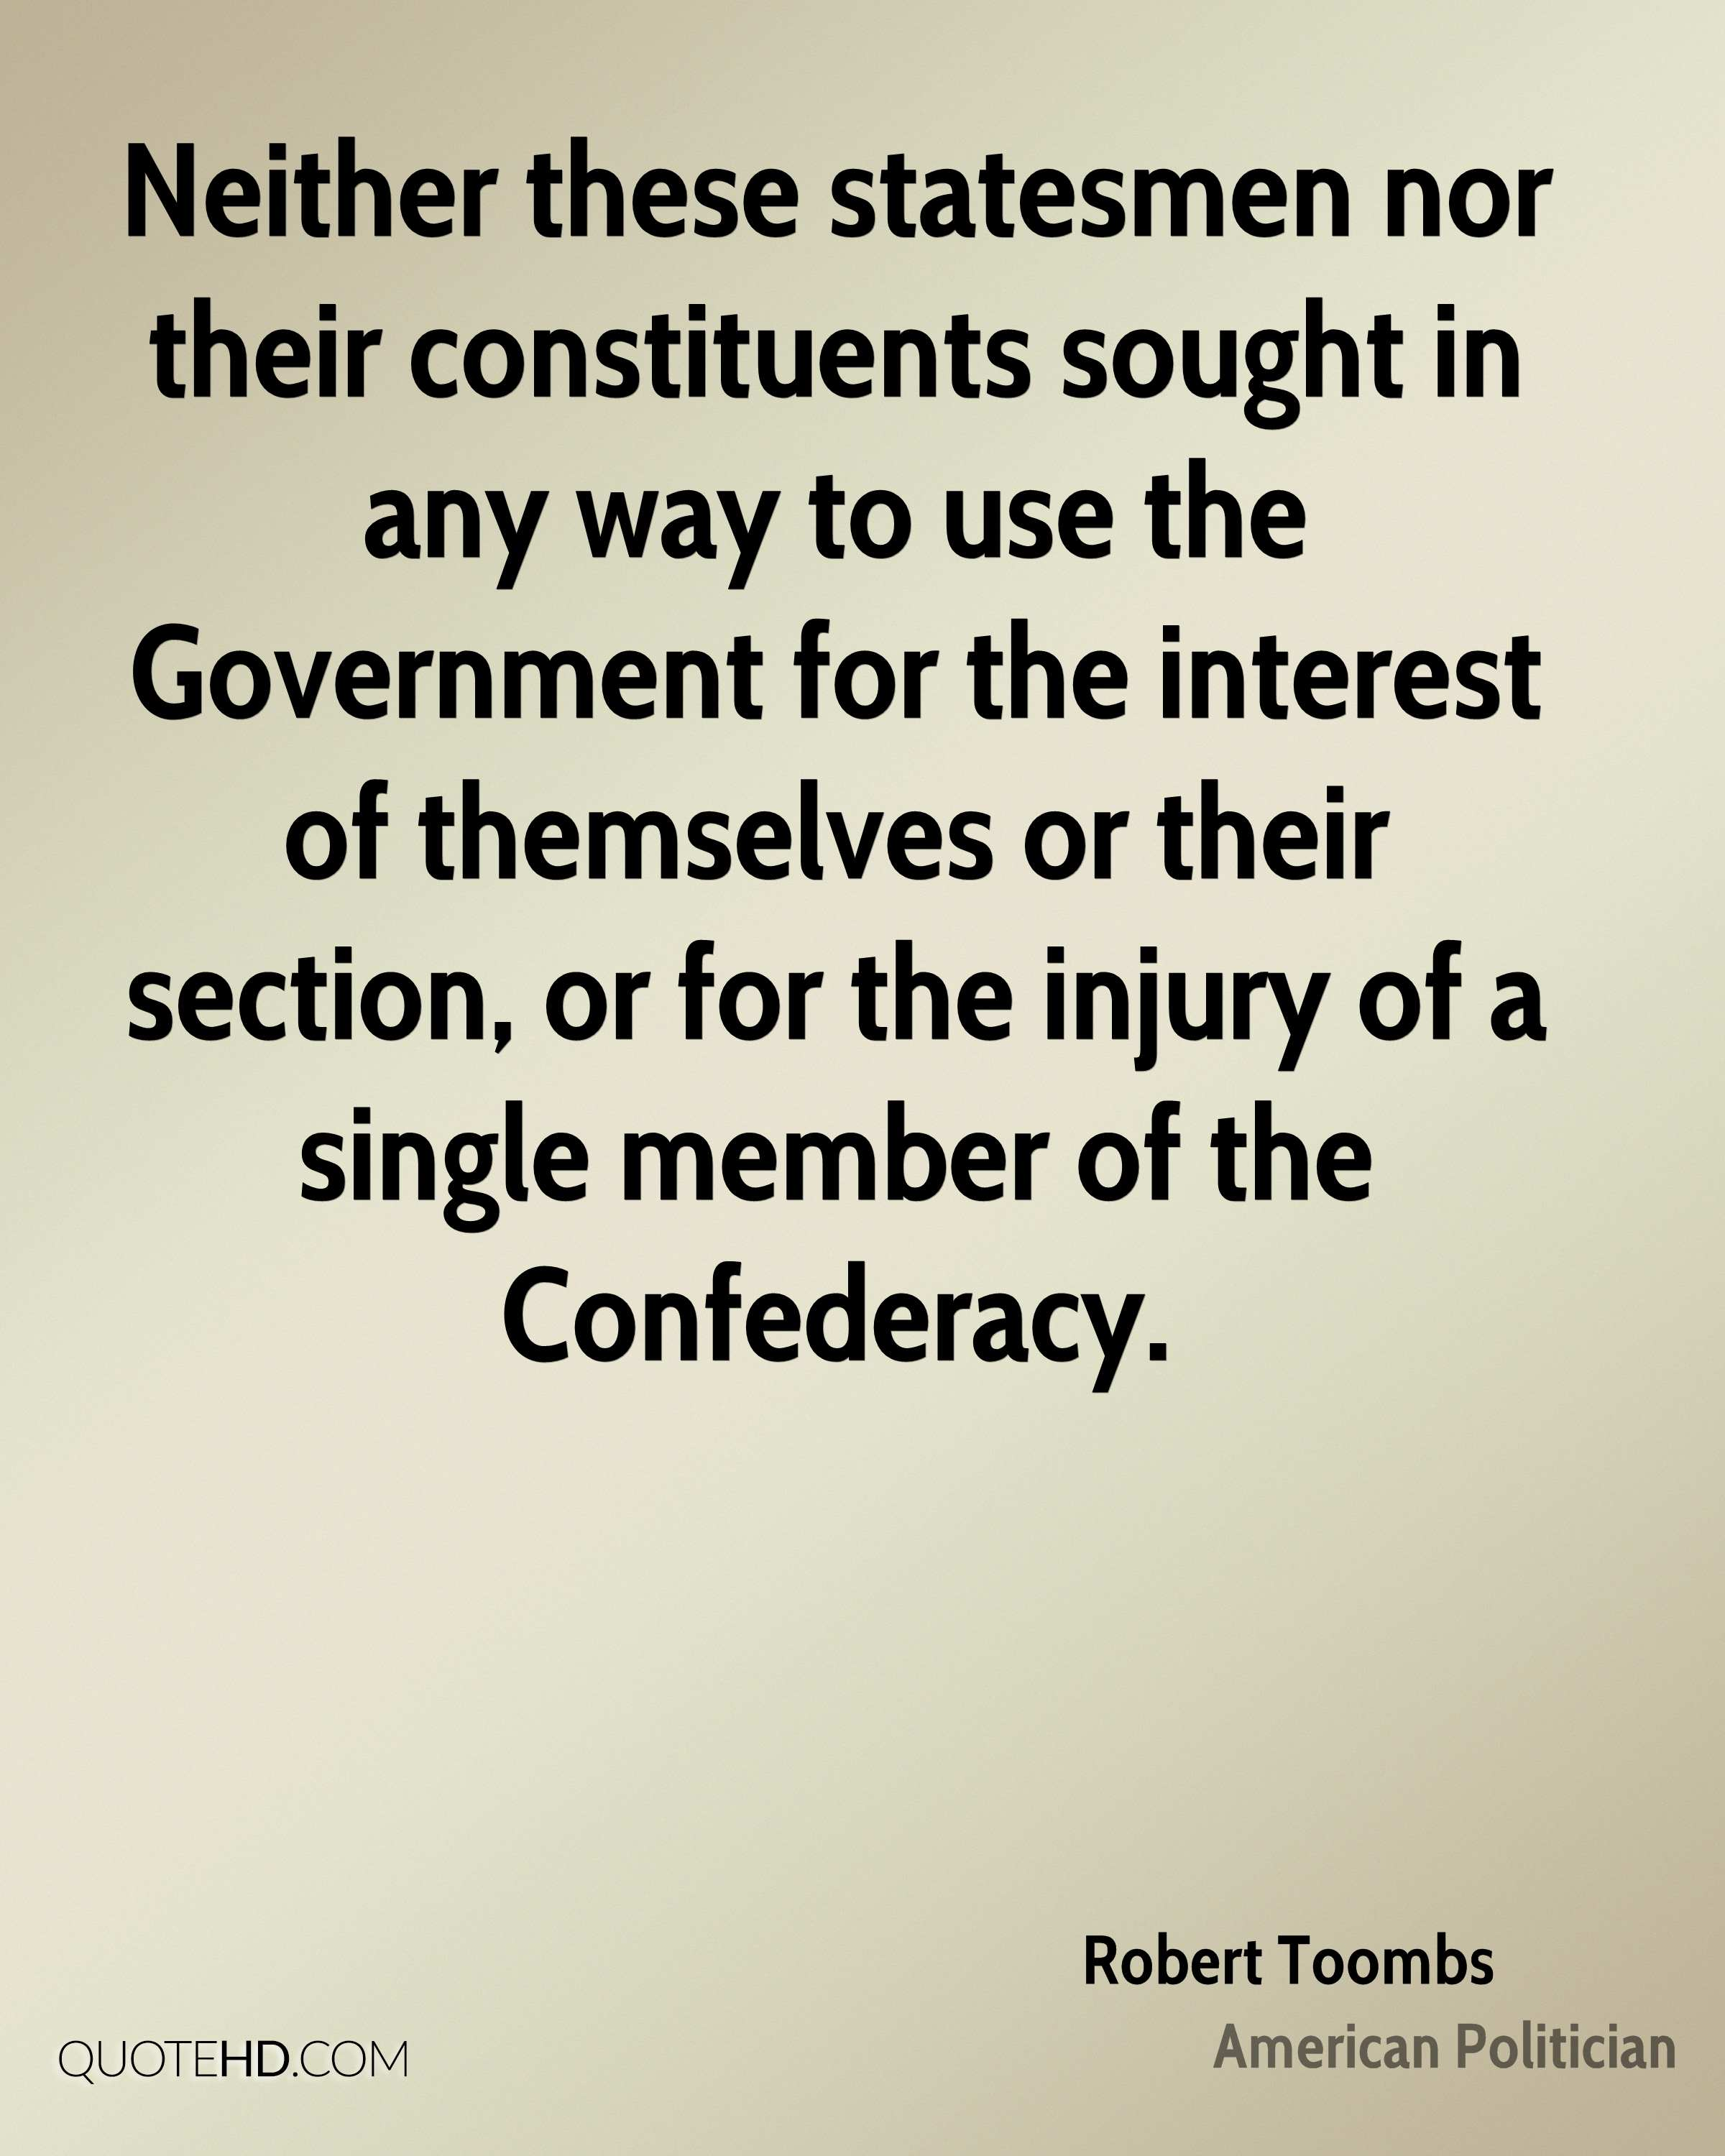 Neither these statesmen nor their constituents sought in any way to use the Government for the interest of themselves or their section, or for the injury of a single member of the Confederacy.